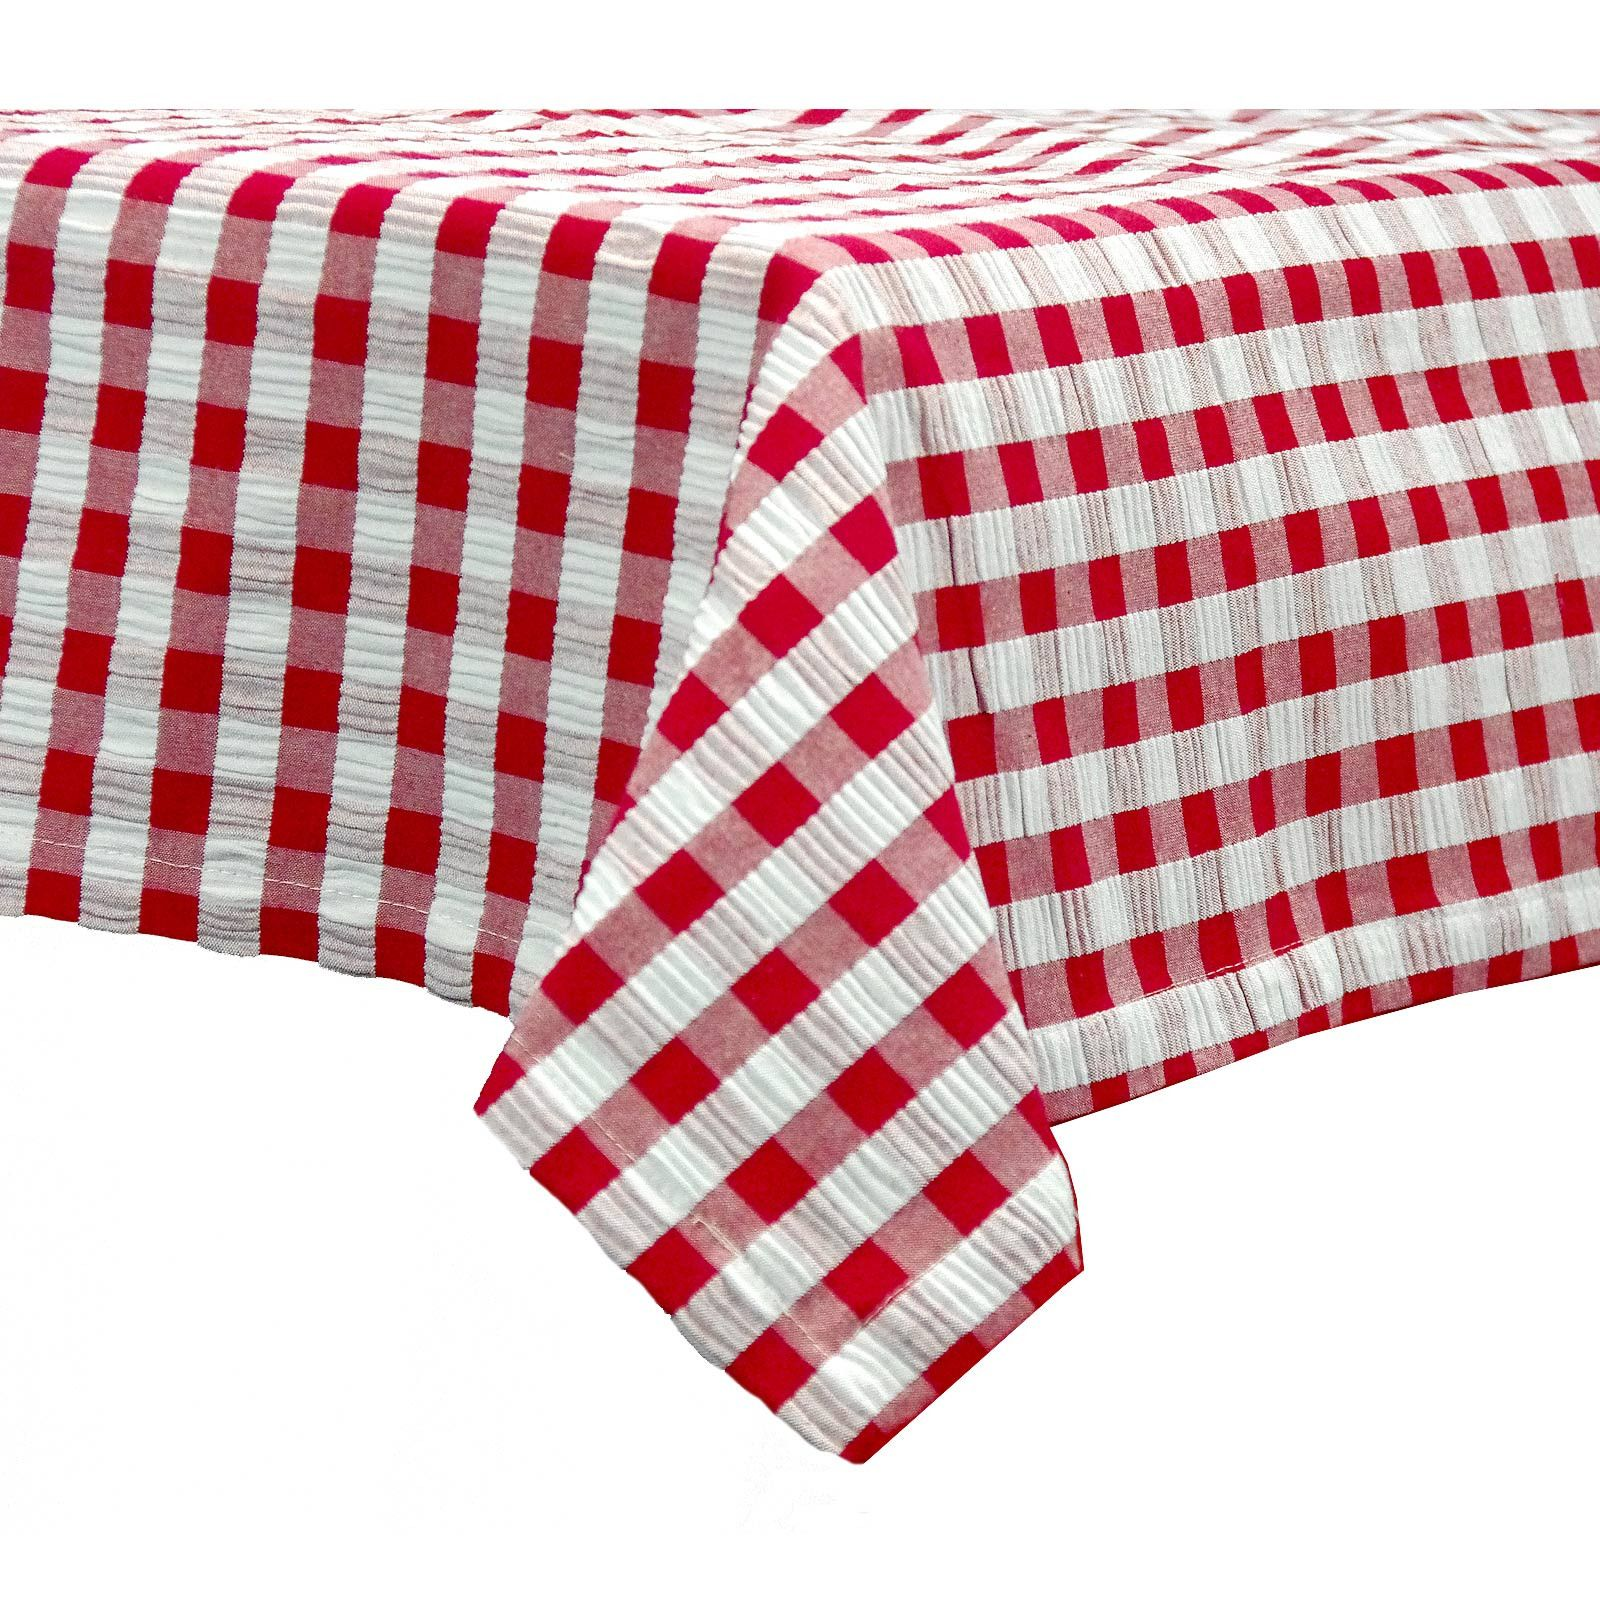 Charming Gingham Seersucker Tablecloths 145cm Square 230cm U0026 270cm Rectangle U2013  Curtains, Tablecloths And Table Linen